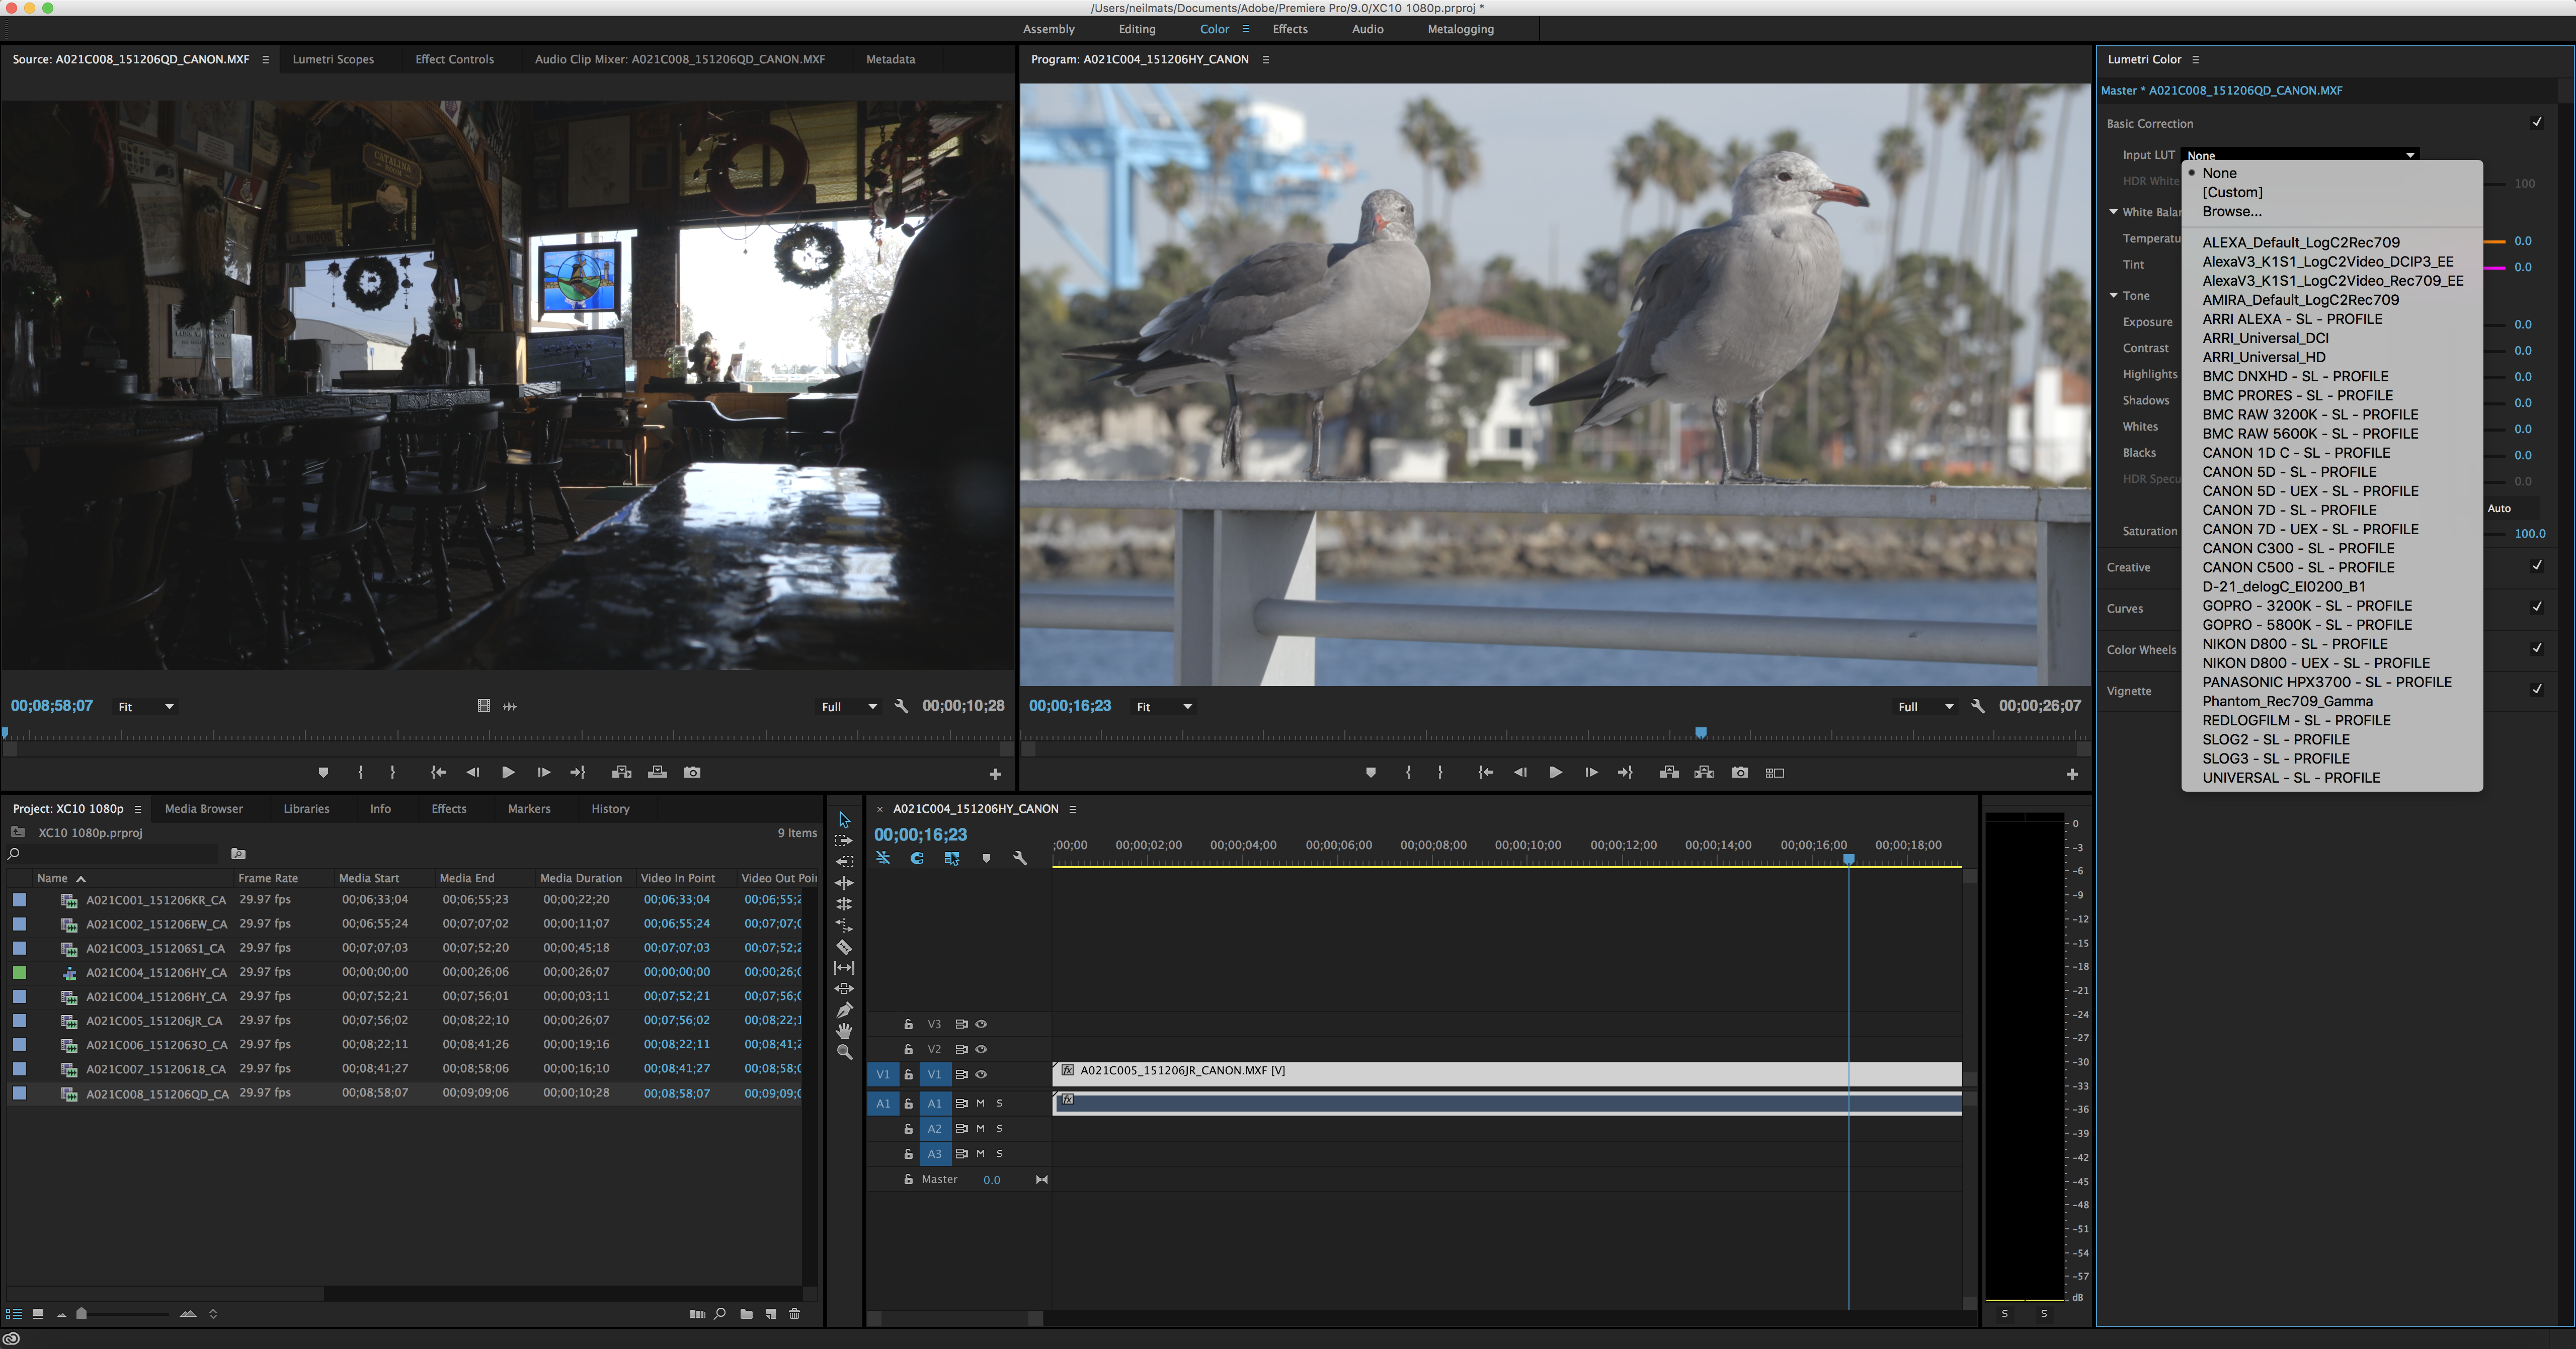 ... Pro CC, you're able to import LUTs to apply to Canon Log footage